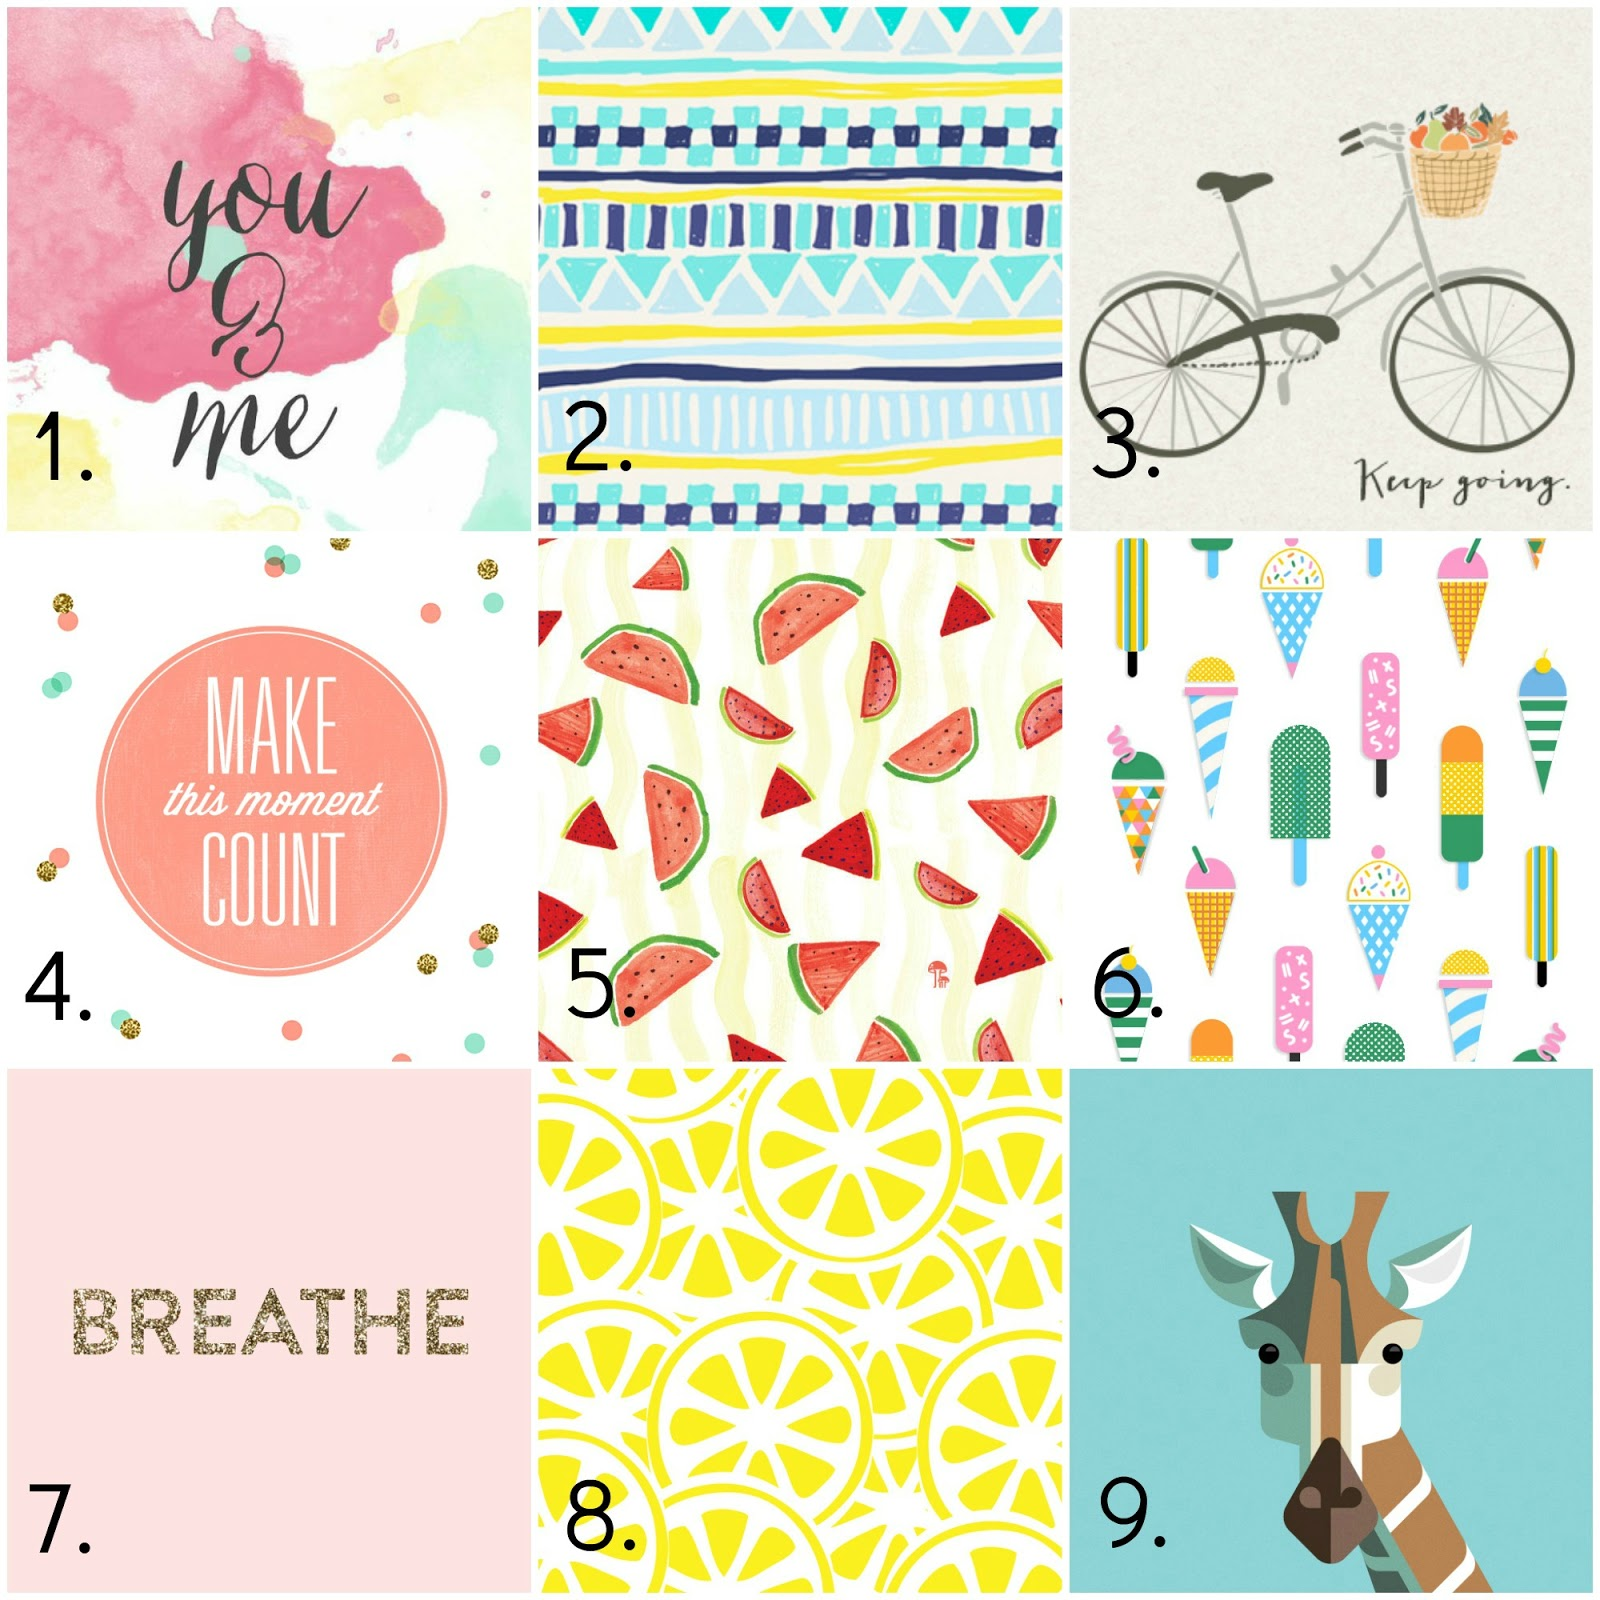 9 Free & Cute iPhone Wallpapers